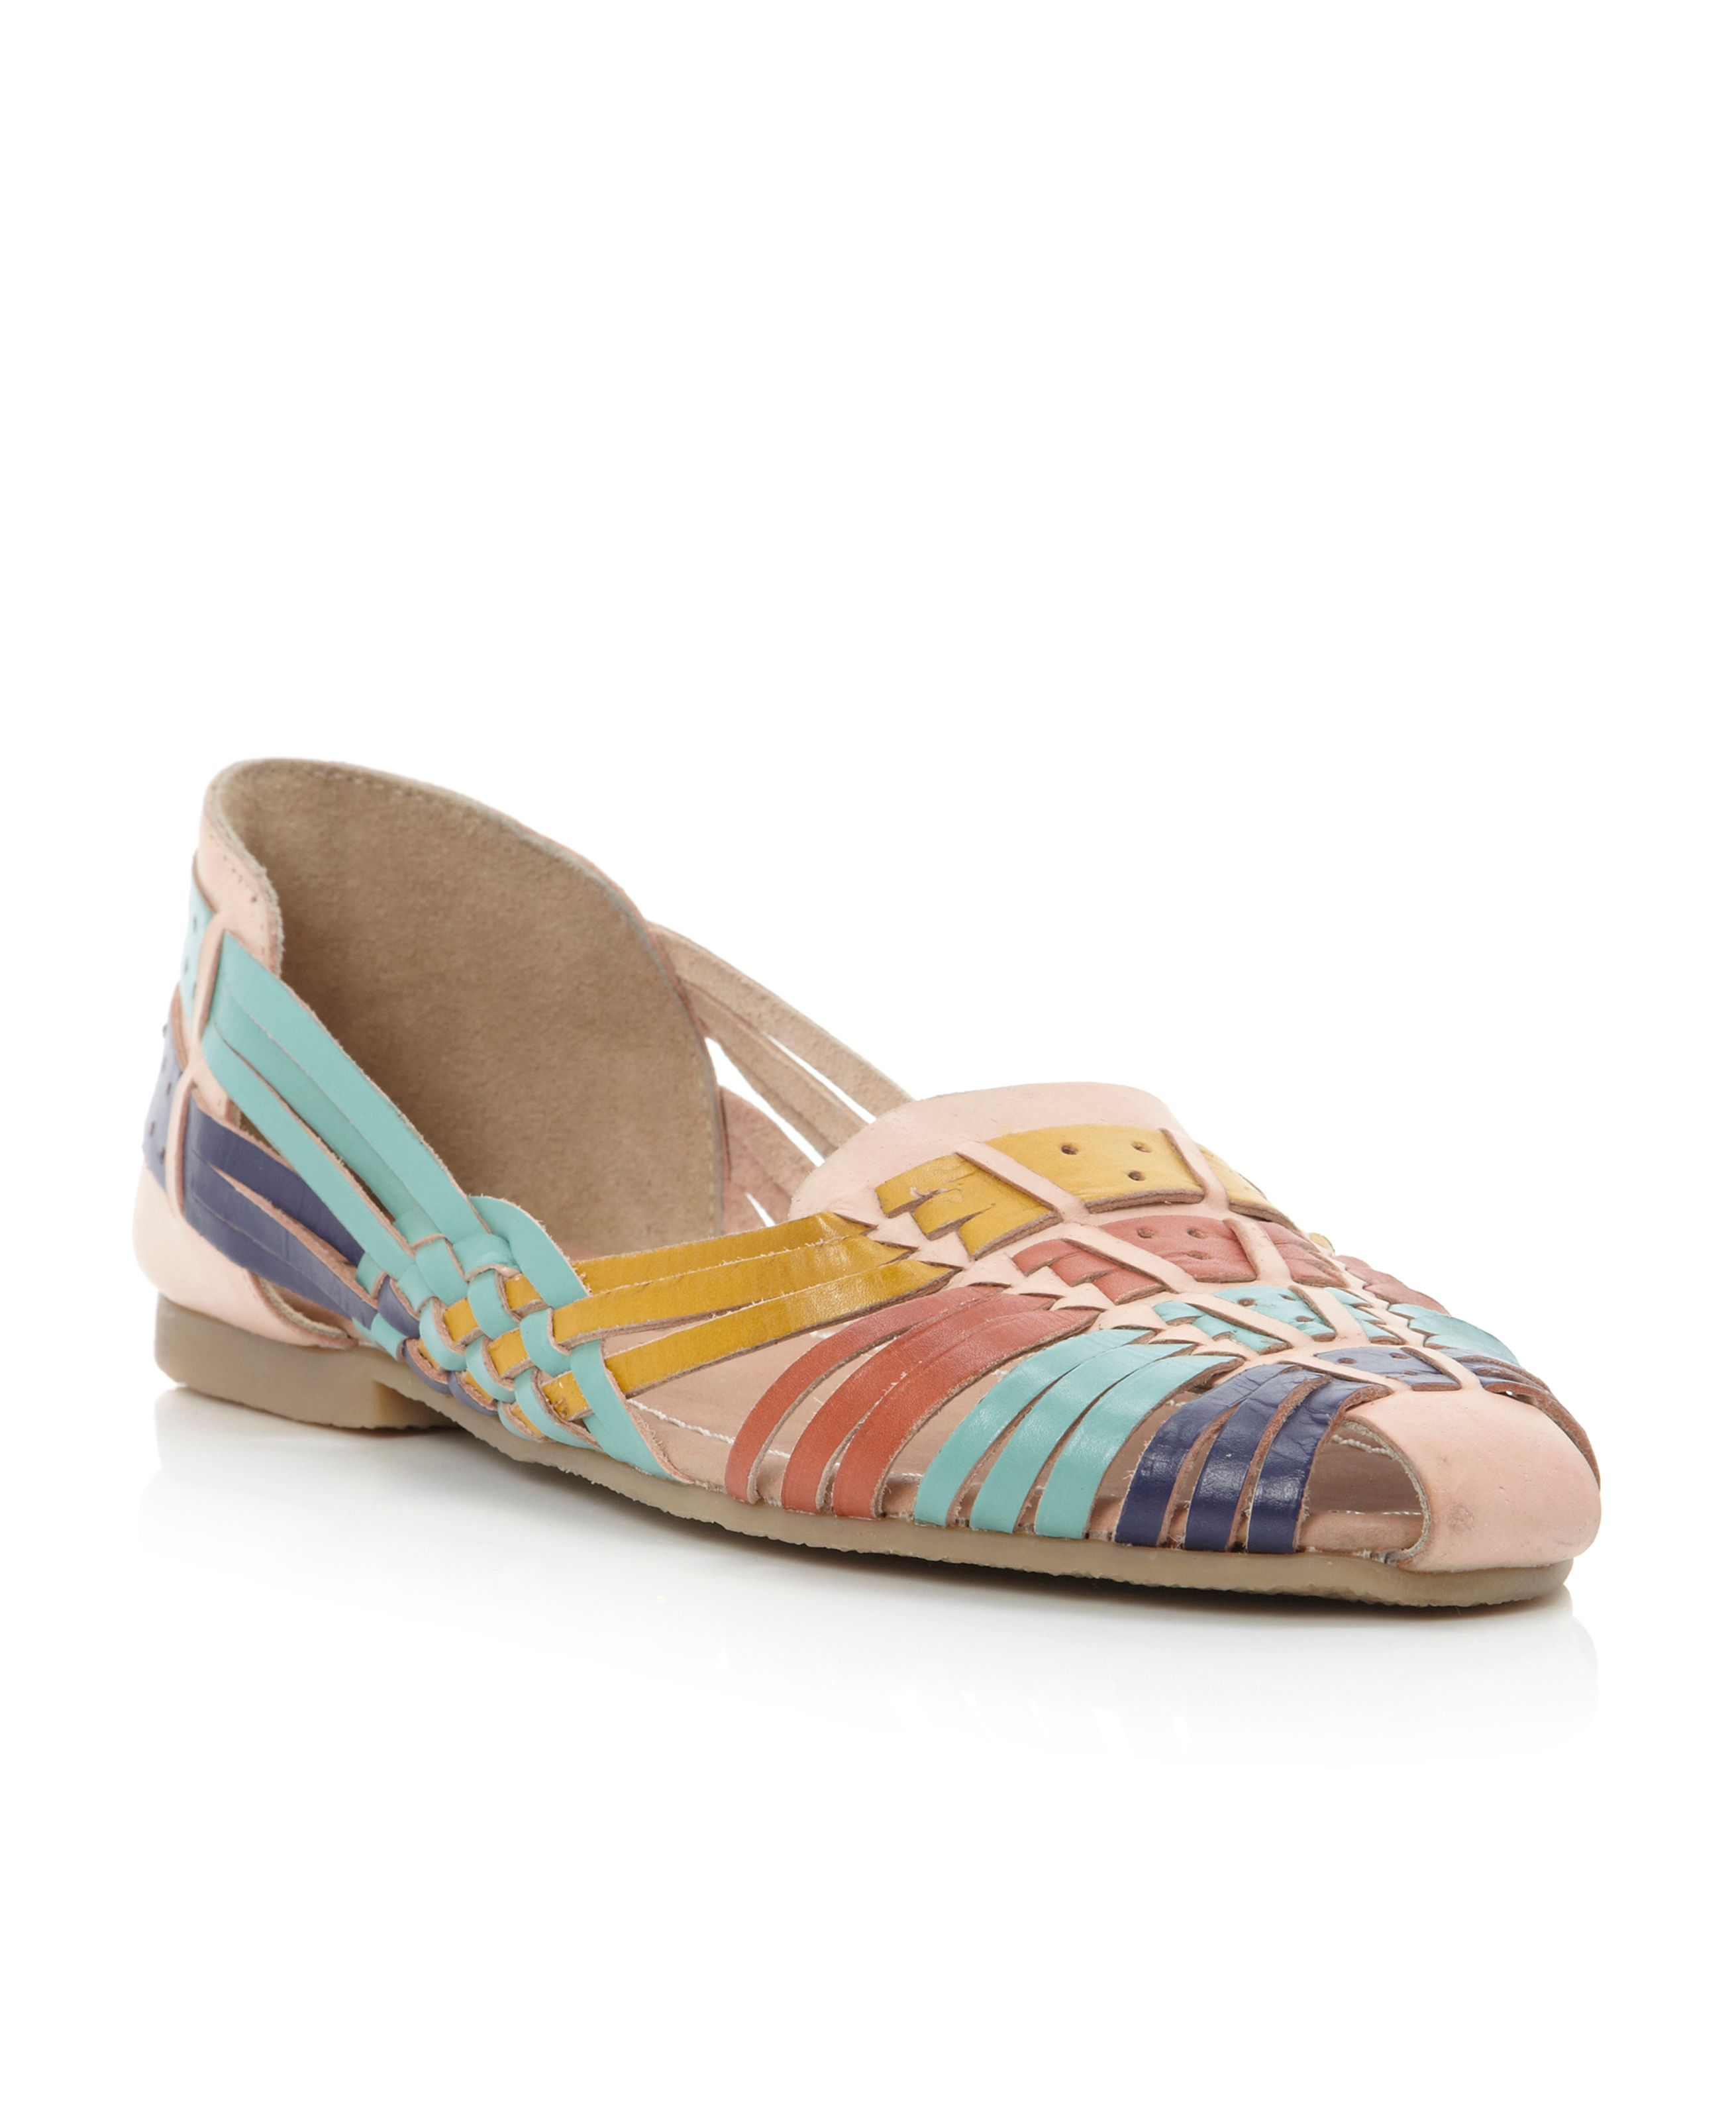 Moiran summer ballerina shoes